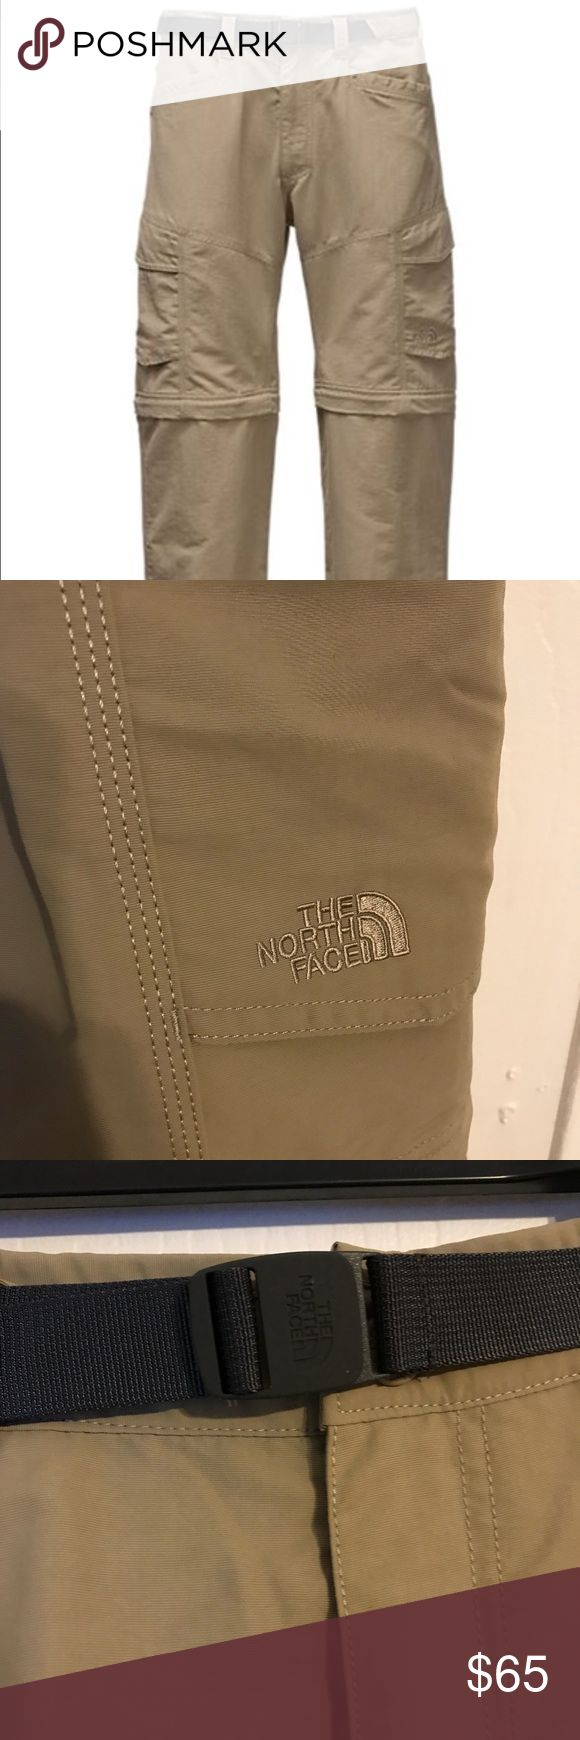 Northface cargos,brand new unused w/tags, nice The North Face Men's Paramount Peak II Pants legs unzip at knees, morphing into shorts, creating the ultimate transitional hiking pant/short combination. A DWR (durable water repellent) finish causes the fabric to shed moisture and keep the abrasion-resistant nylon exterior dry when exposed to light rainfall. The Elastic waistband at back with front webbed belt closure gives you a comfortable fit. These pants are 100% bluesign® approved fabric a…